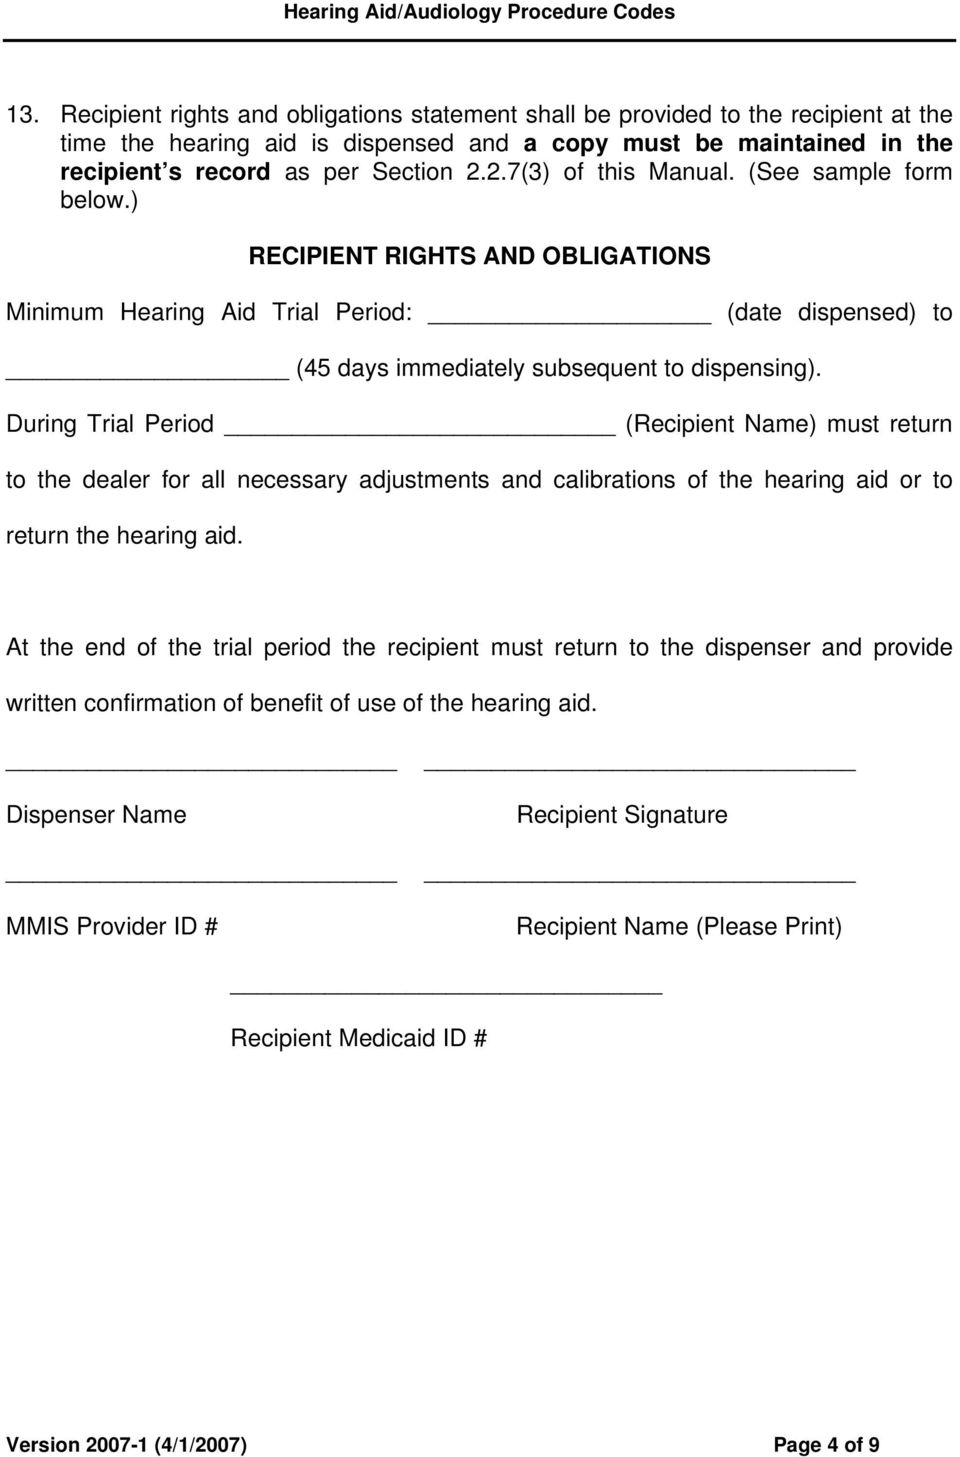 During Trial Period (Recipient Name) must return to the dealer for all necessary adjustments and calibrations of the hearing aid or to return the hearing aid.